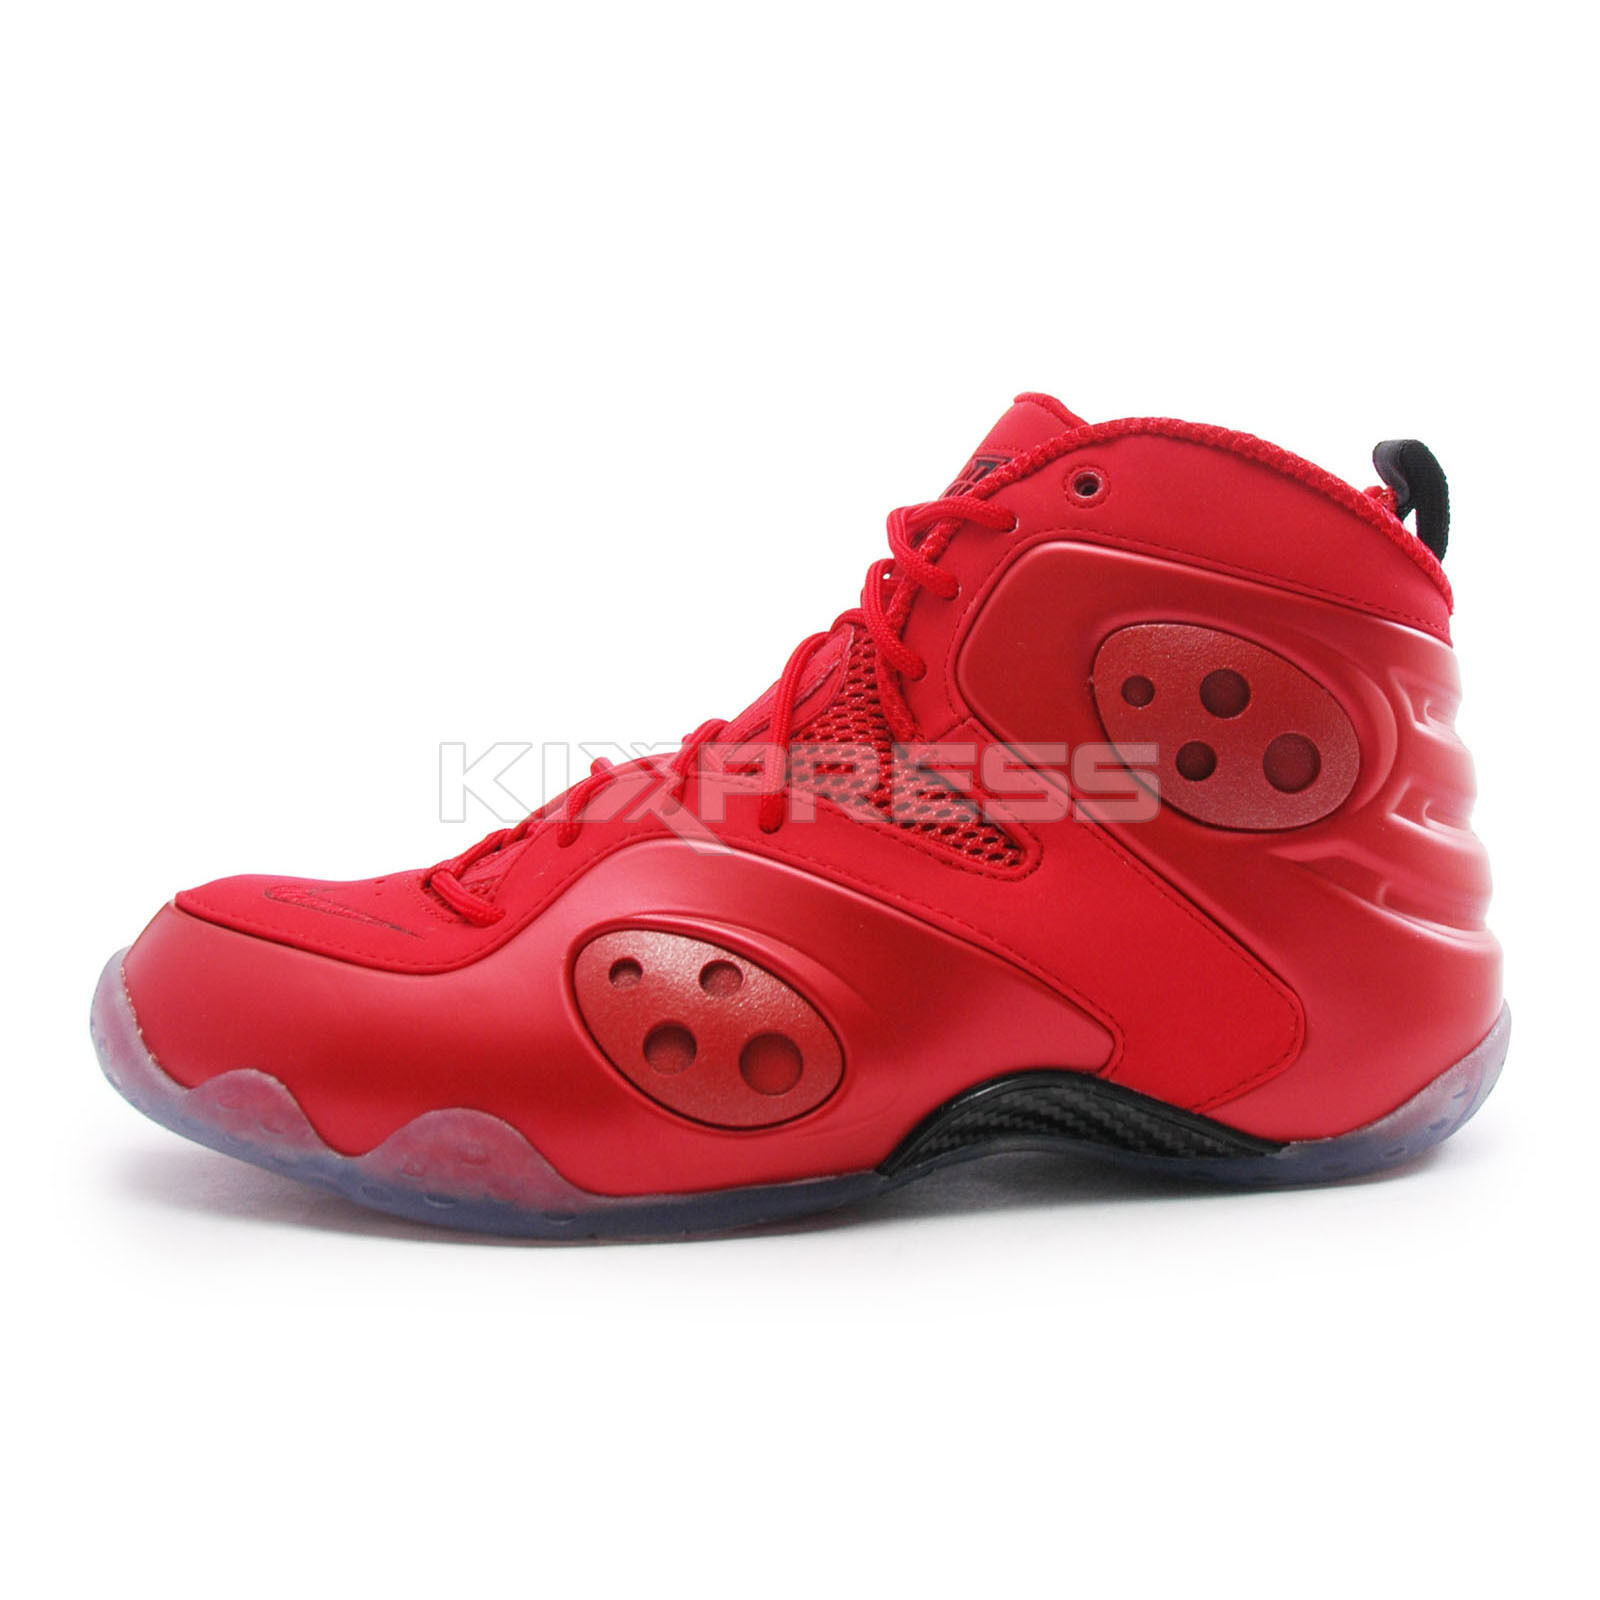 Nike Zoom Rookie [472688-601] NSW Basketball Penny Foamposite LWP Red/Tourmaline